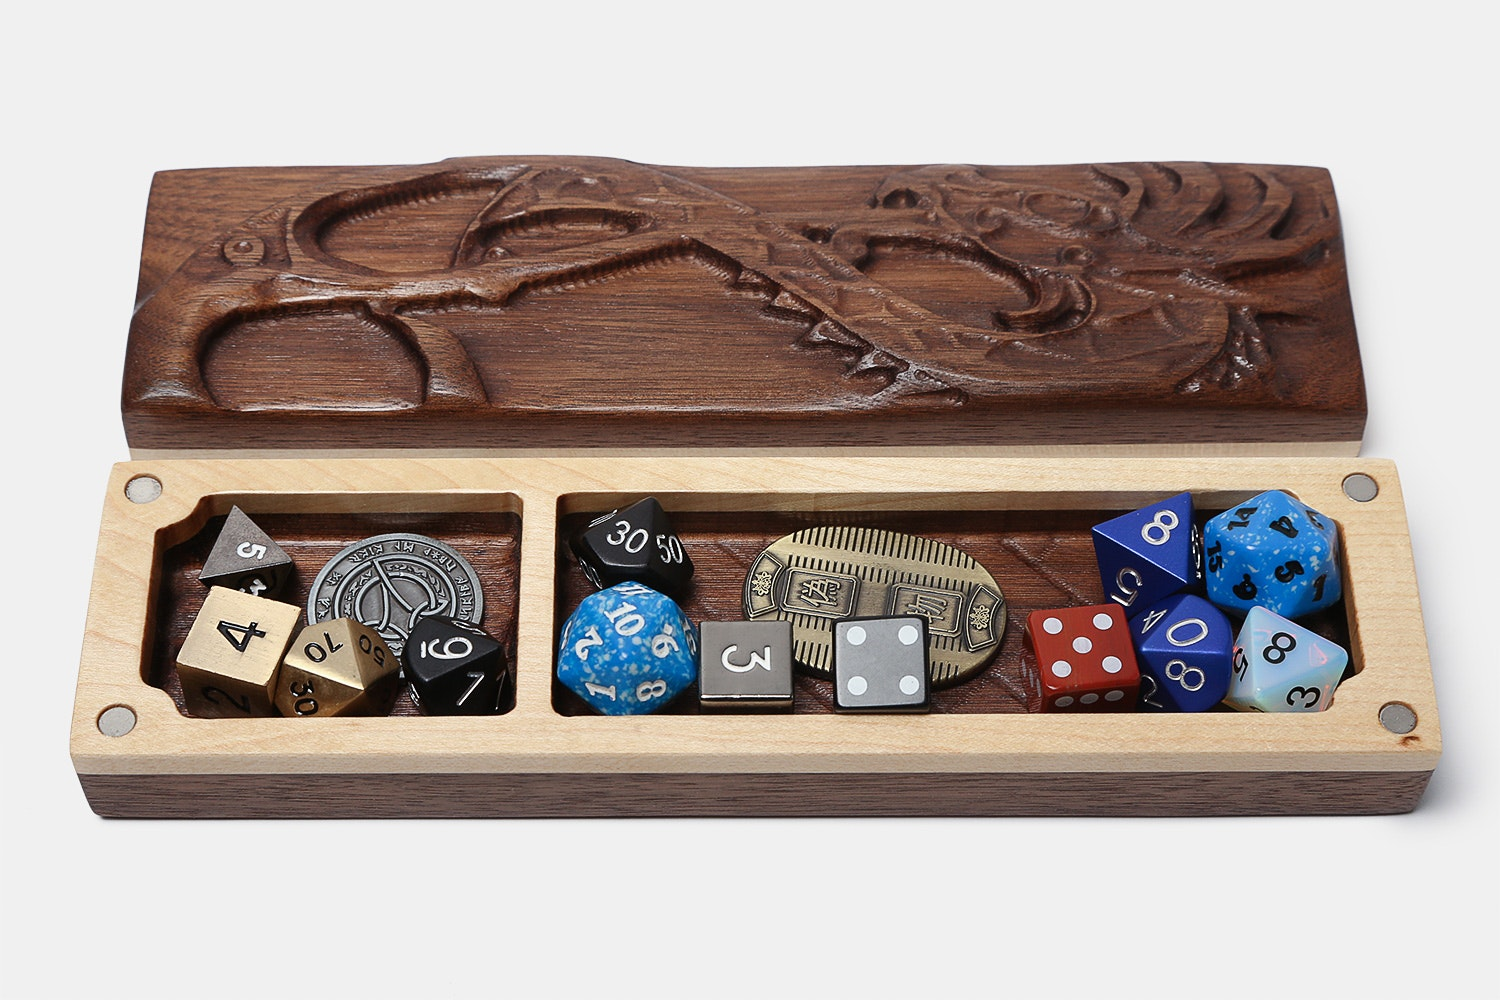 Dragon Sheath Fiery Dice Case